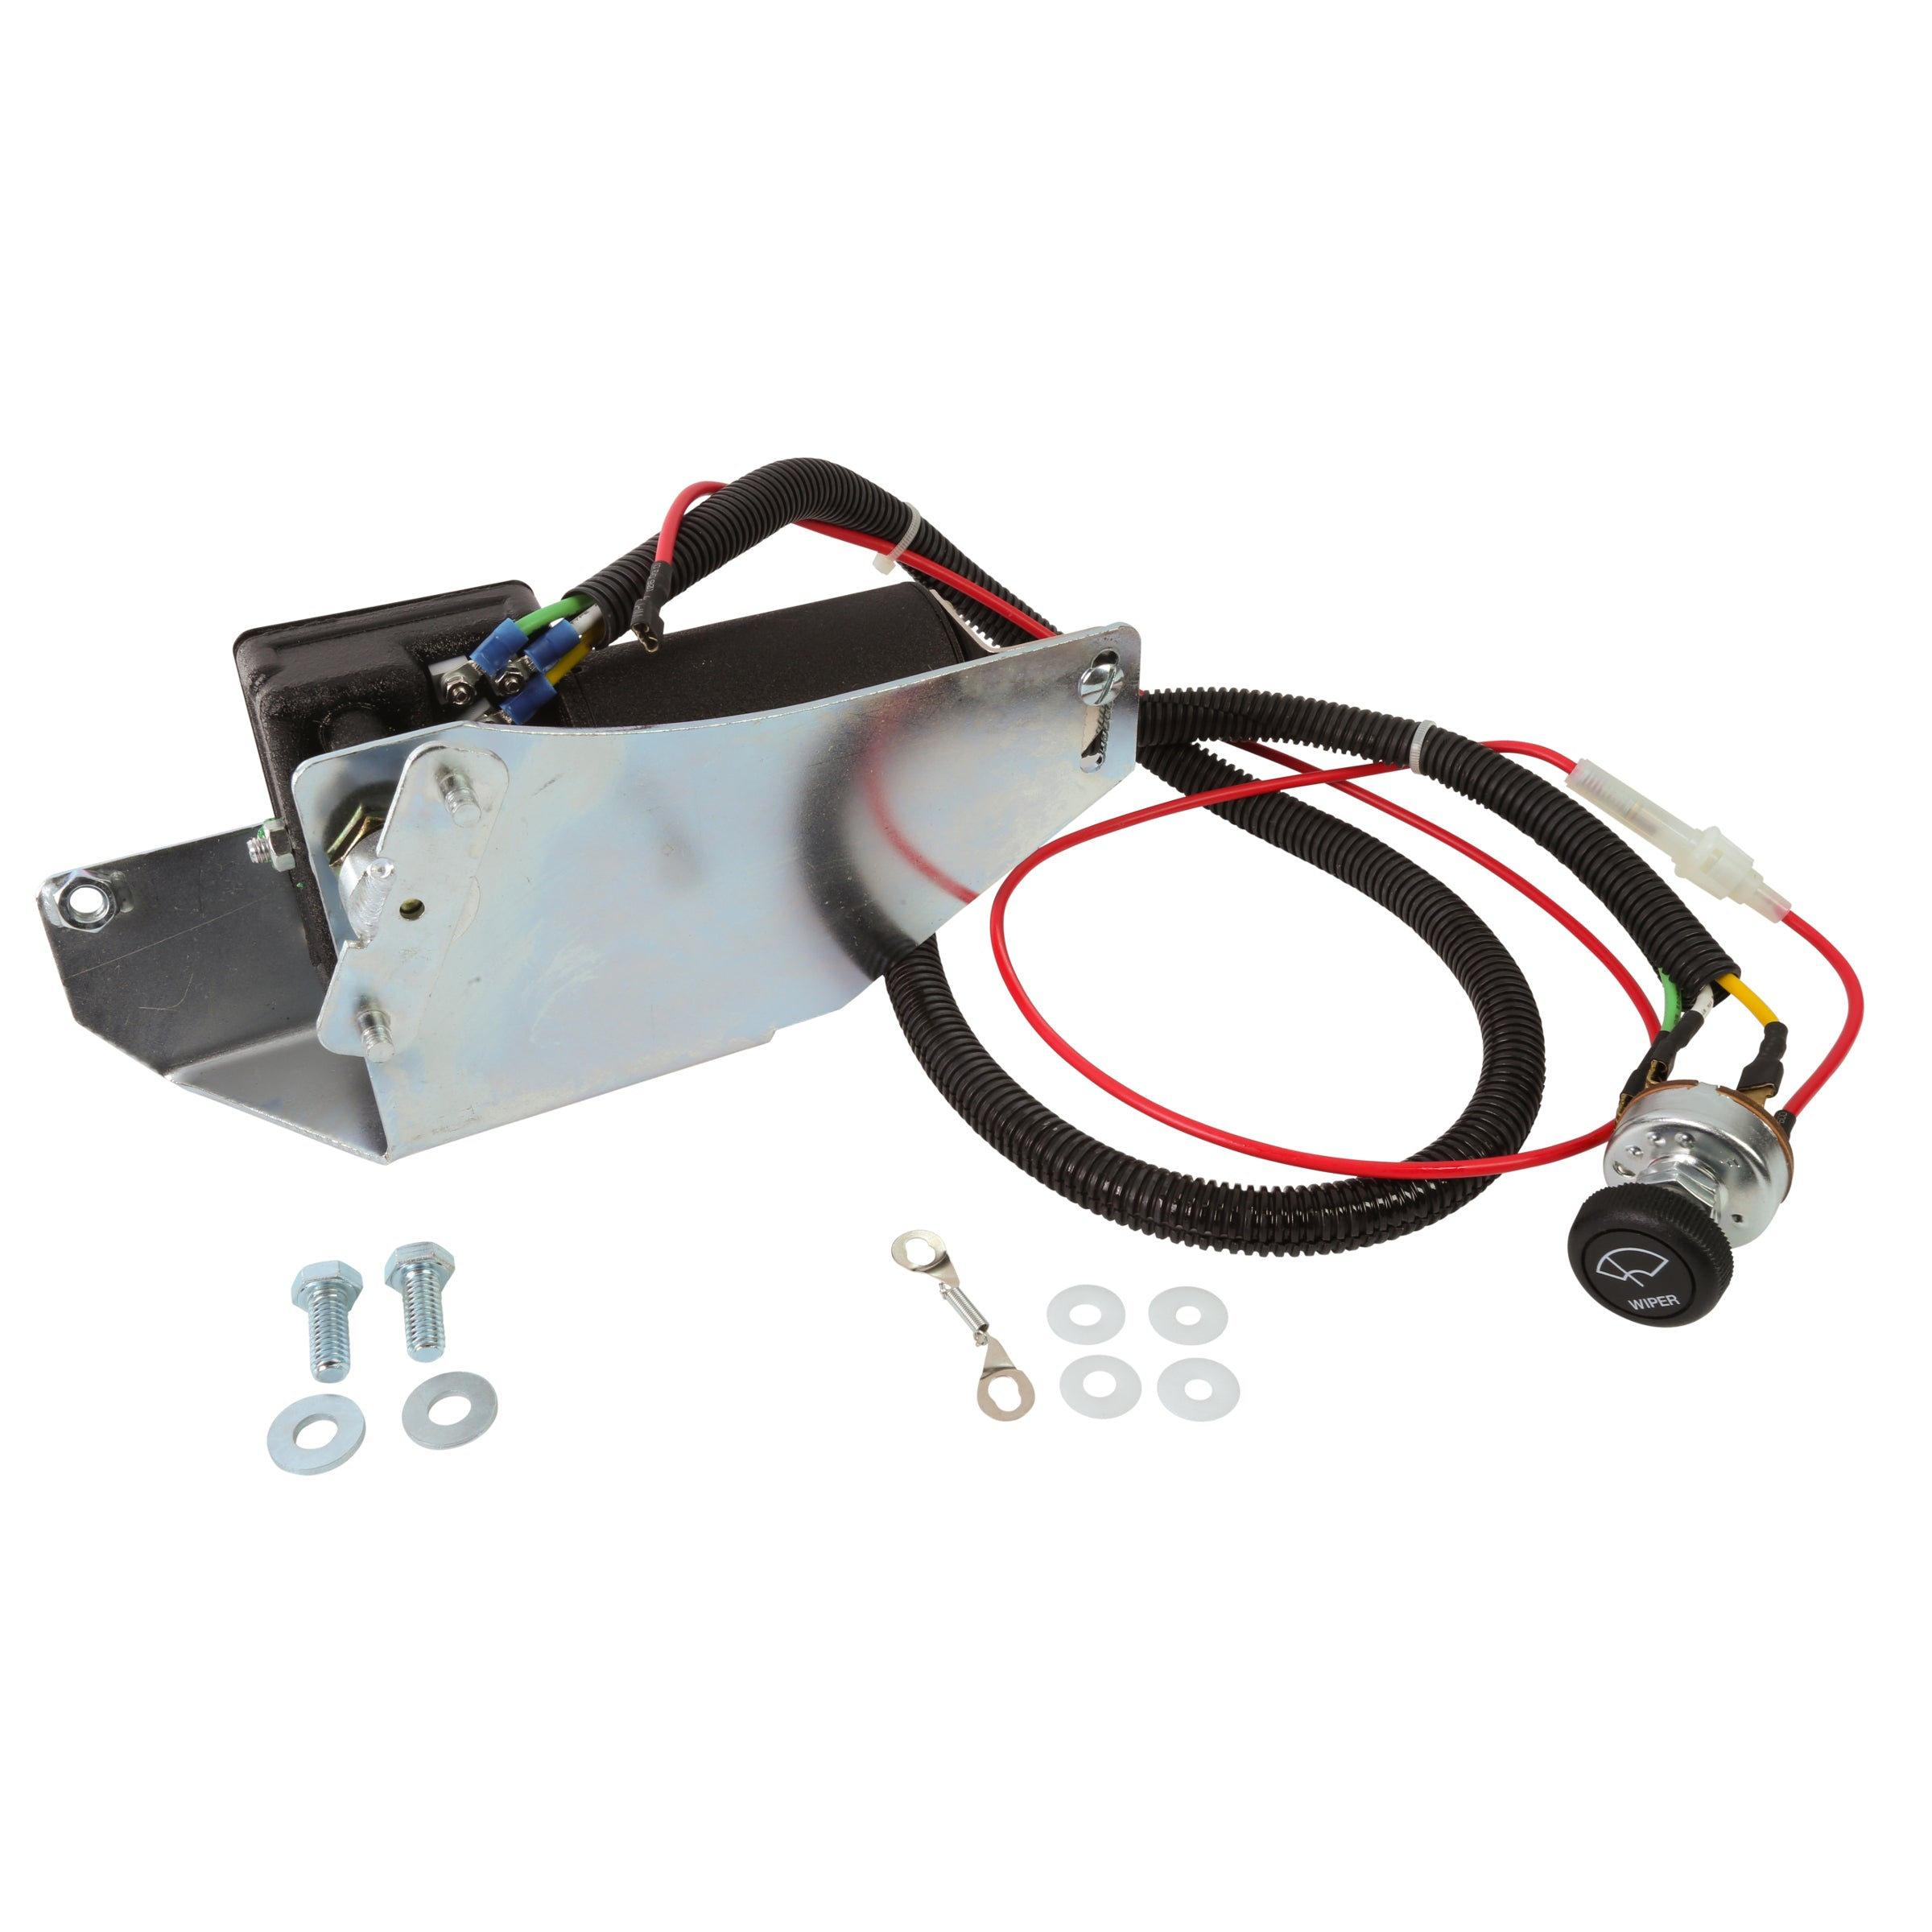 Electric Wiper Motor Conversion Kit • 1940 Passenger 12 Volt